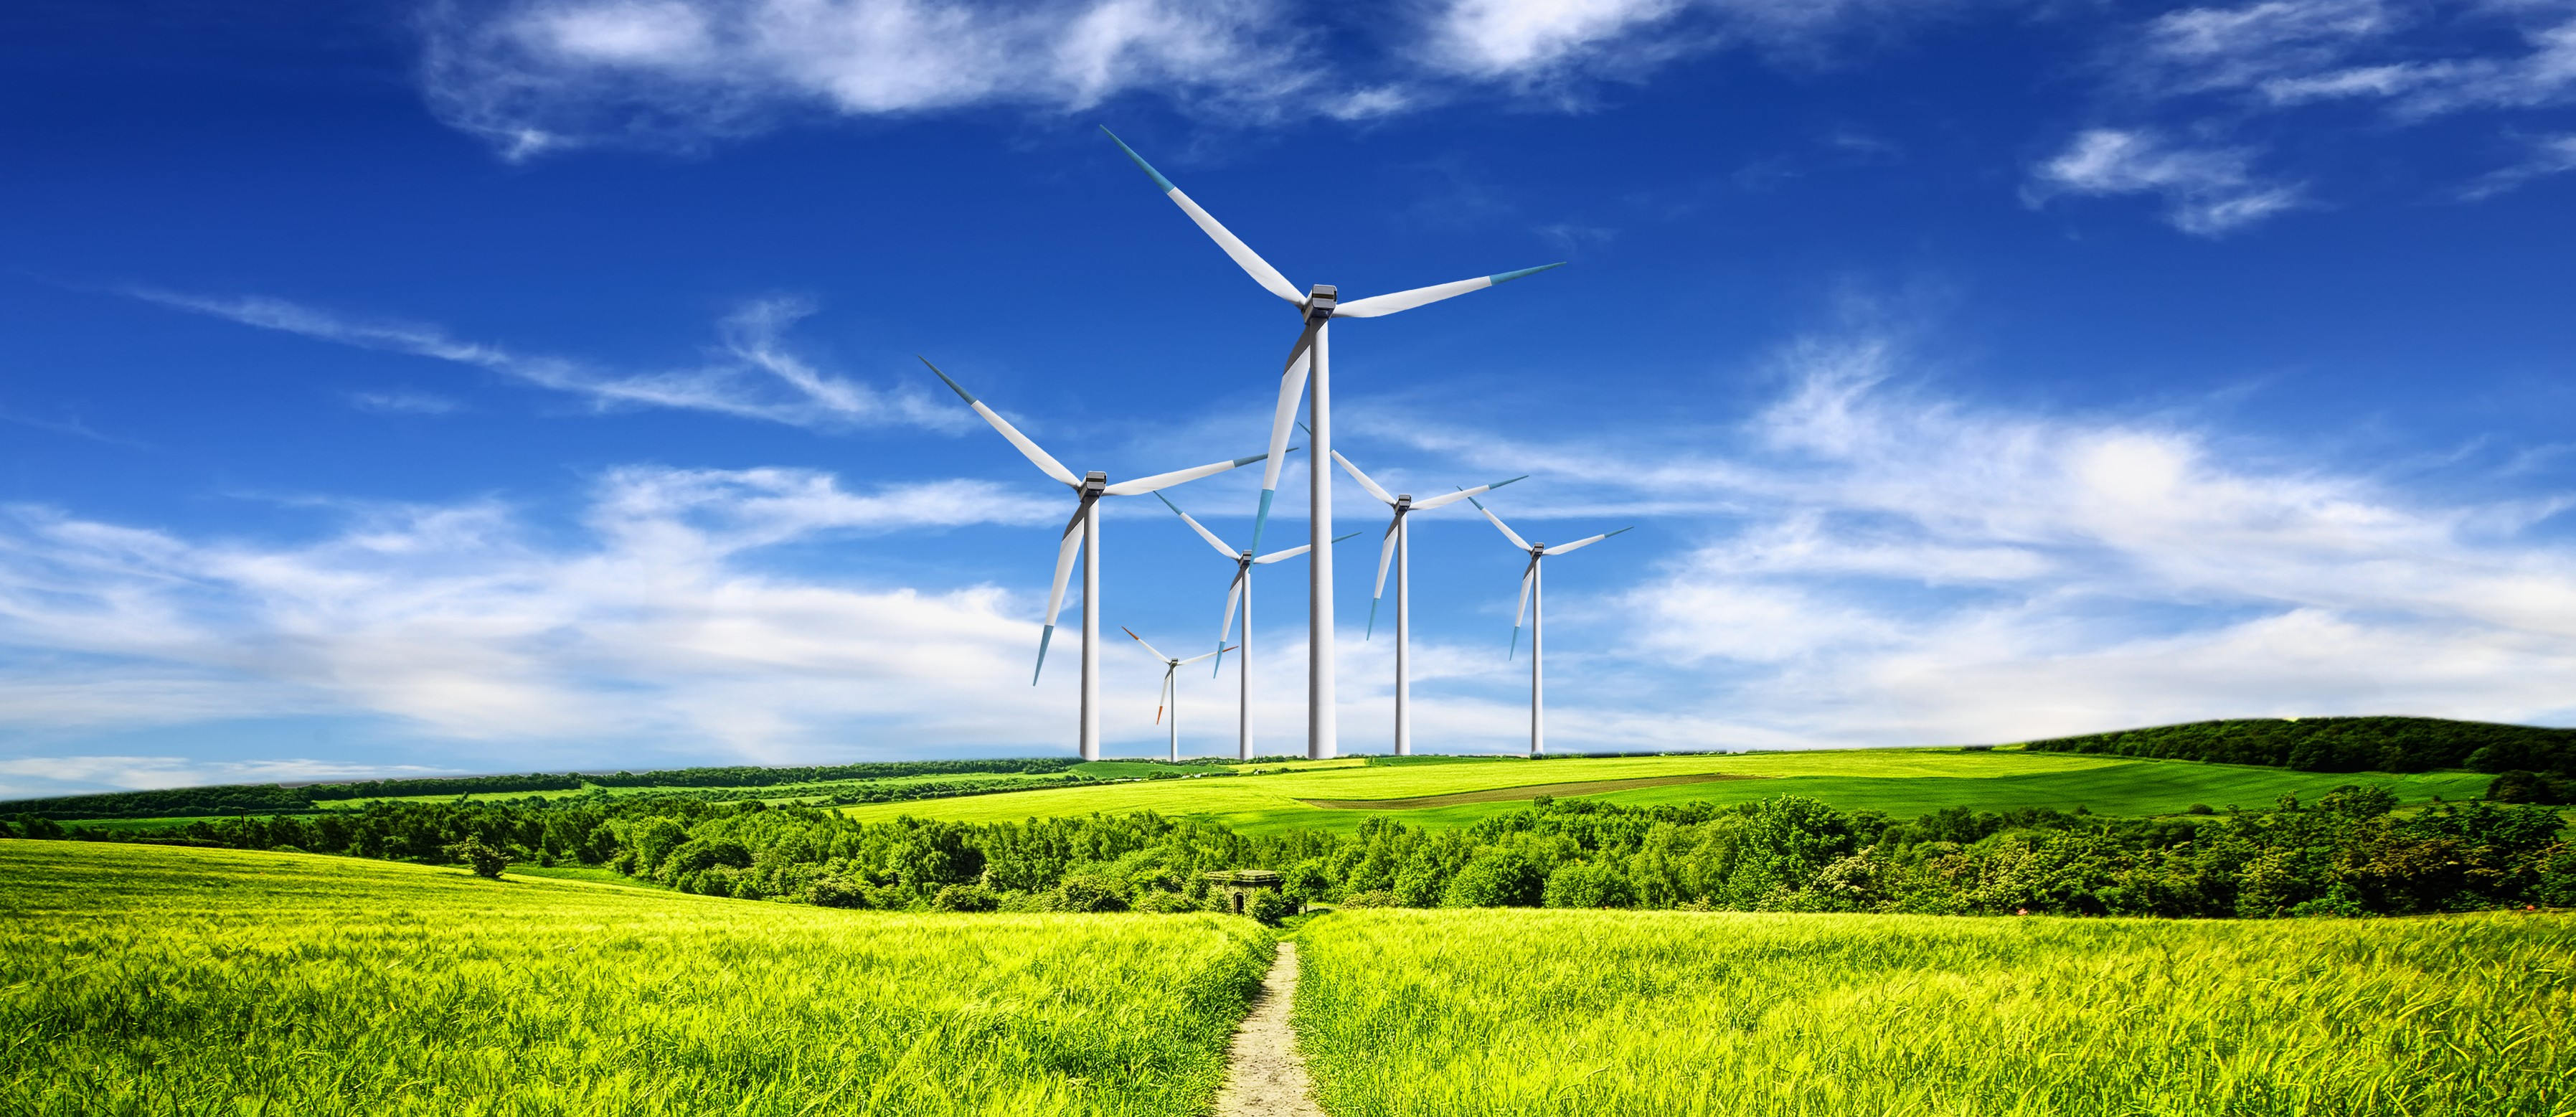 New industries can feast on volatile wind, solar: Q&A